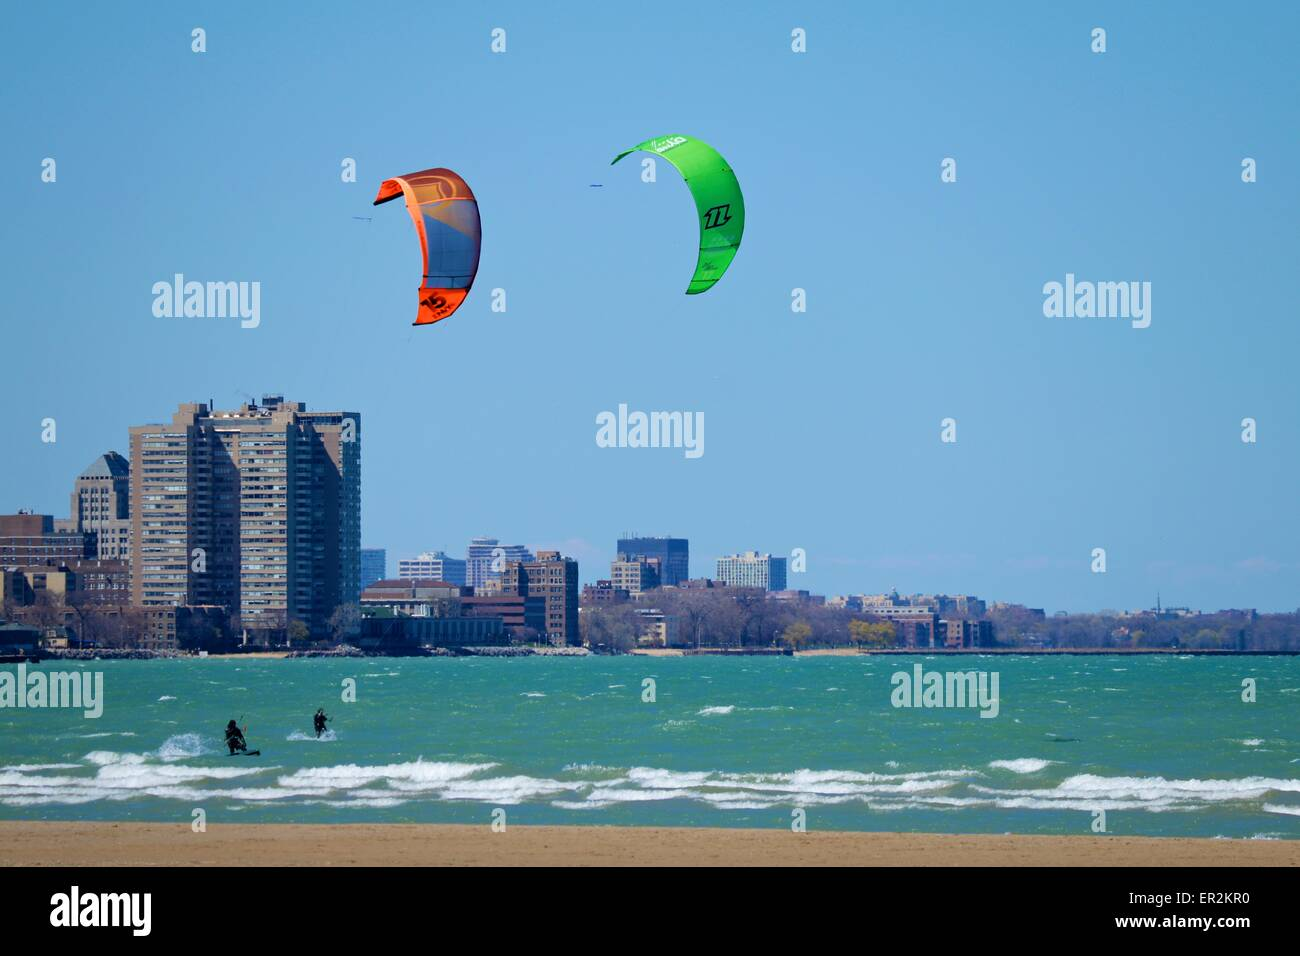 Kitesurfing the breakers at Montrose Beach, Chicago, Illinois - Stock Image